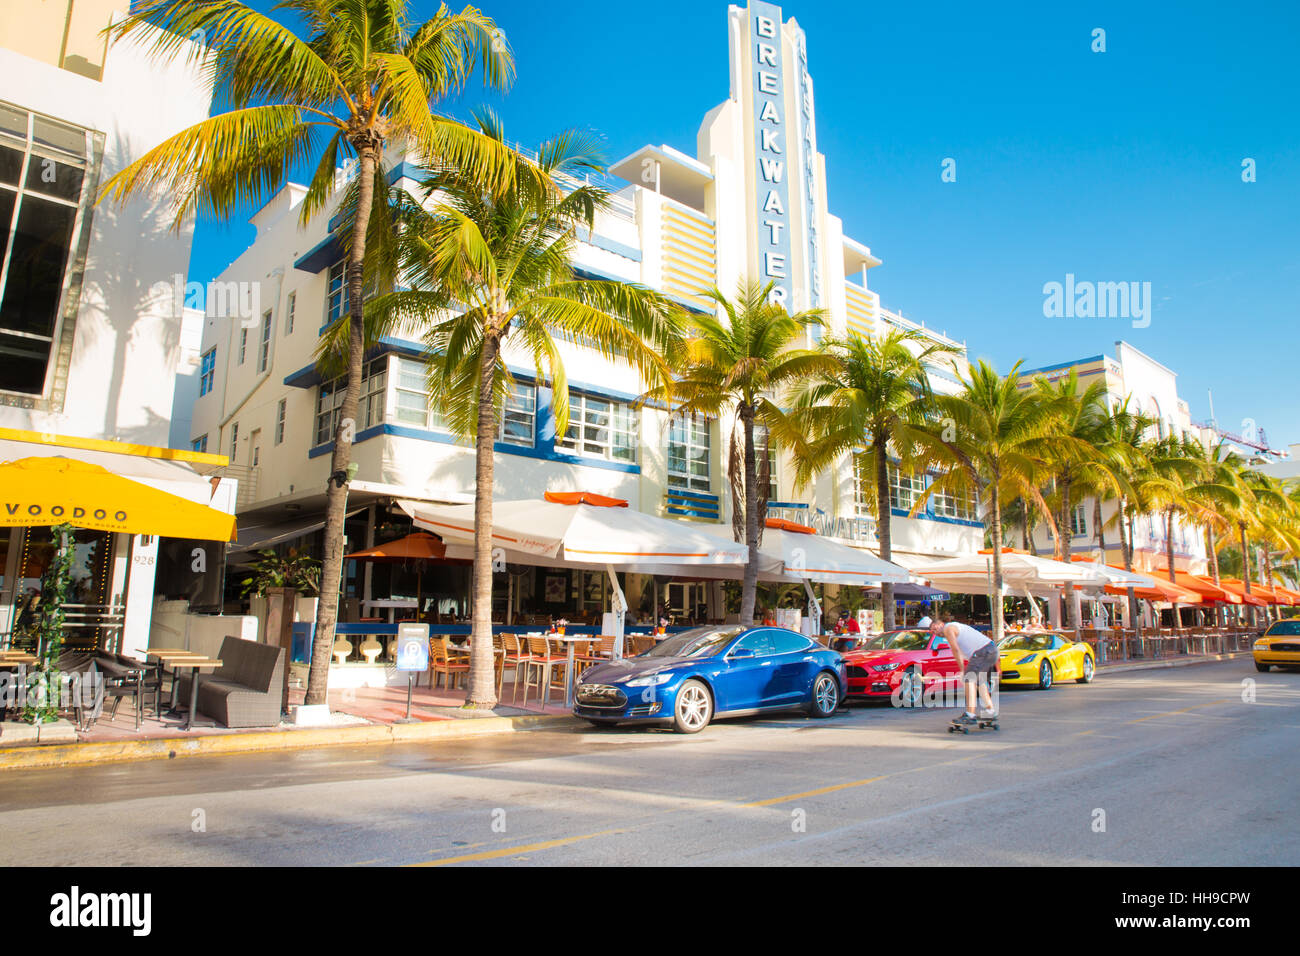 View along the famous vacation and tourist location on Ocean Drive in the Art Deco district of South Beach, Miami - Stock Image